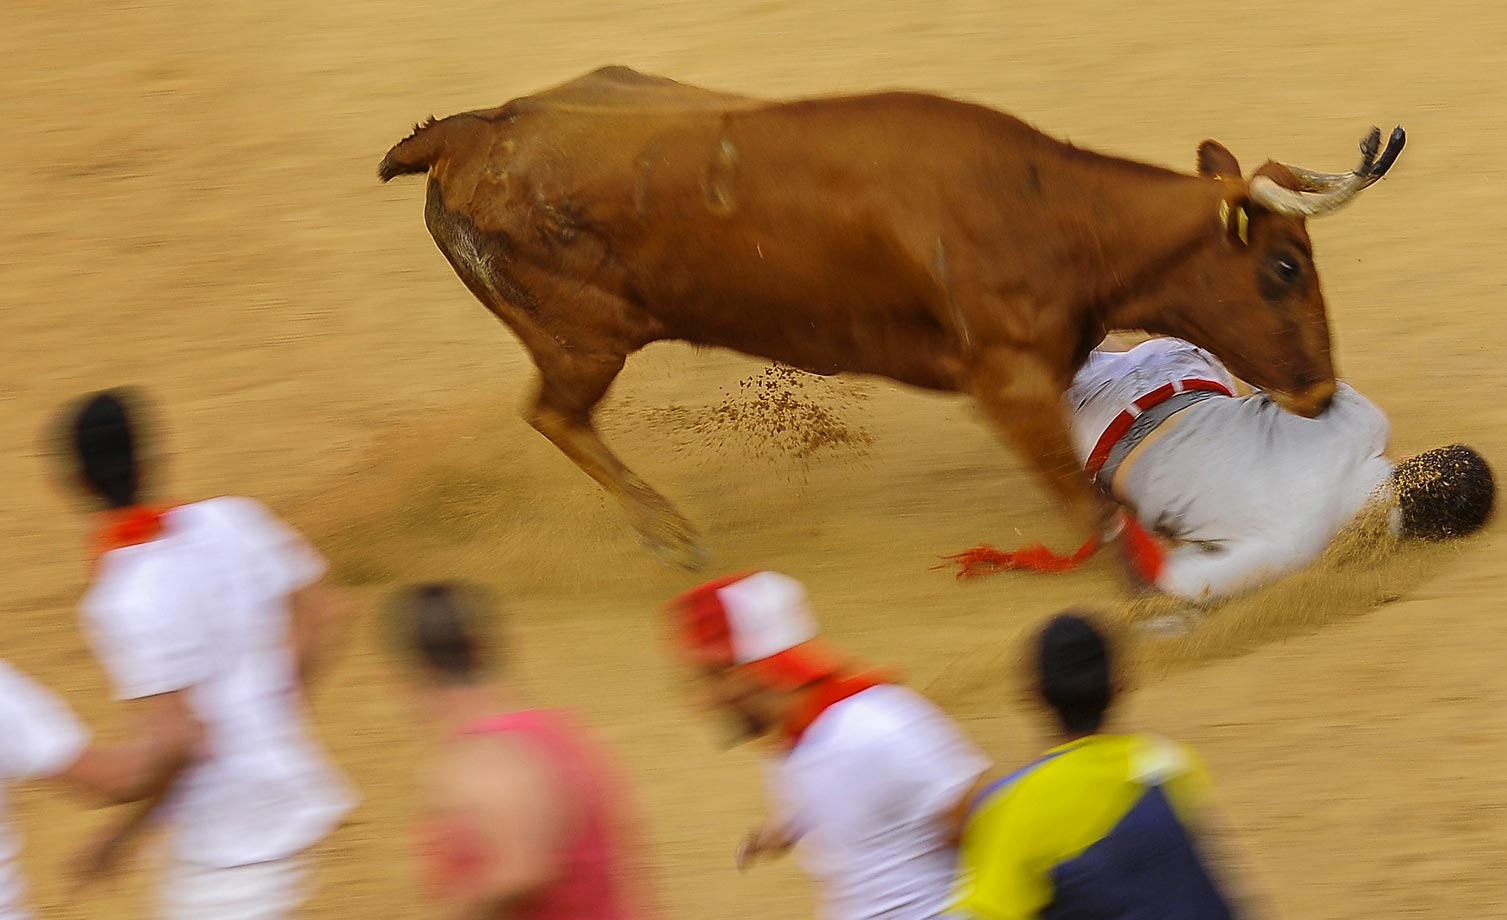 Revelers from around the world arrive in Pamplona every year to take part in some of the eight days of the running of the bulls.